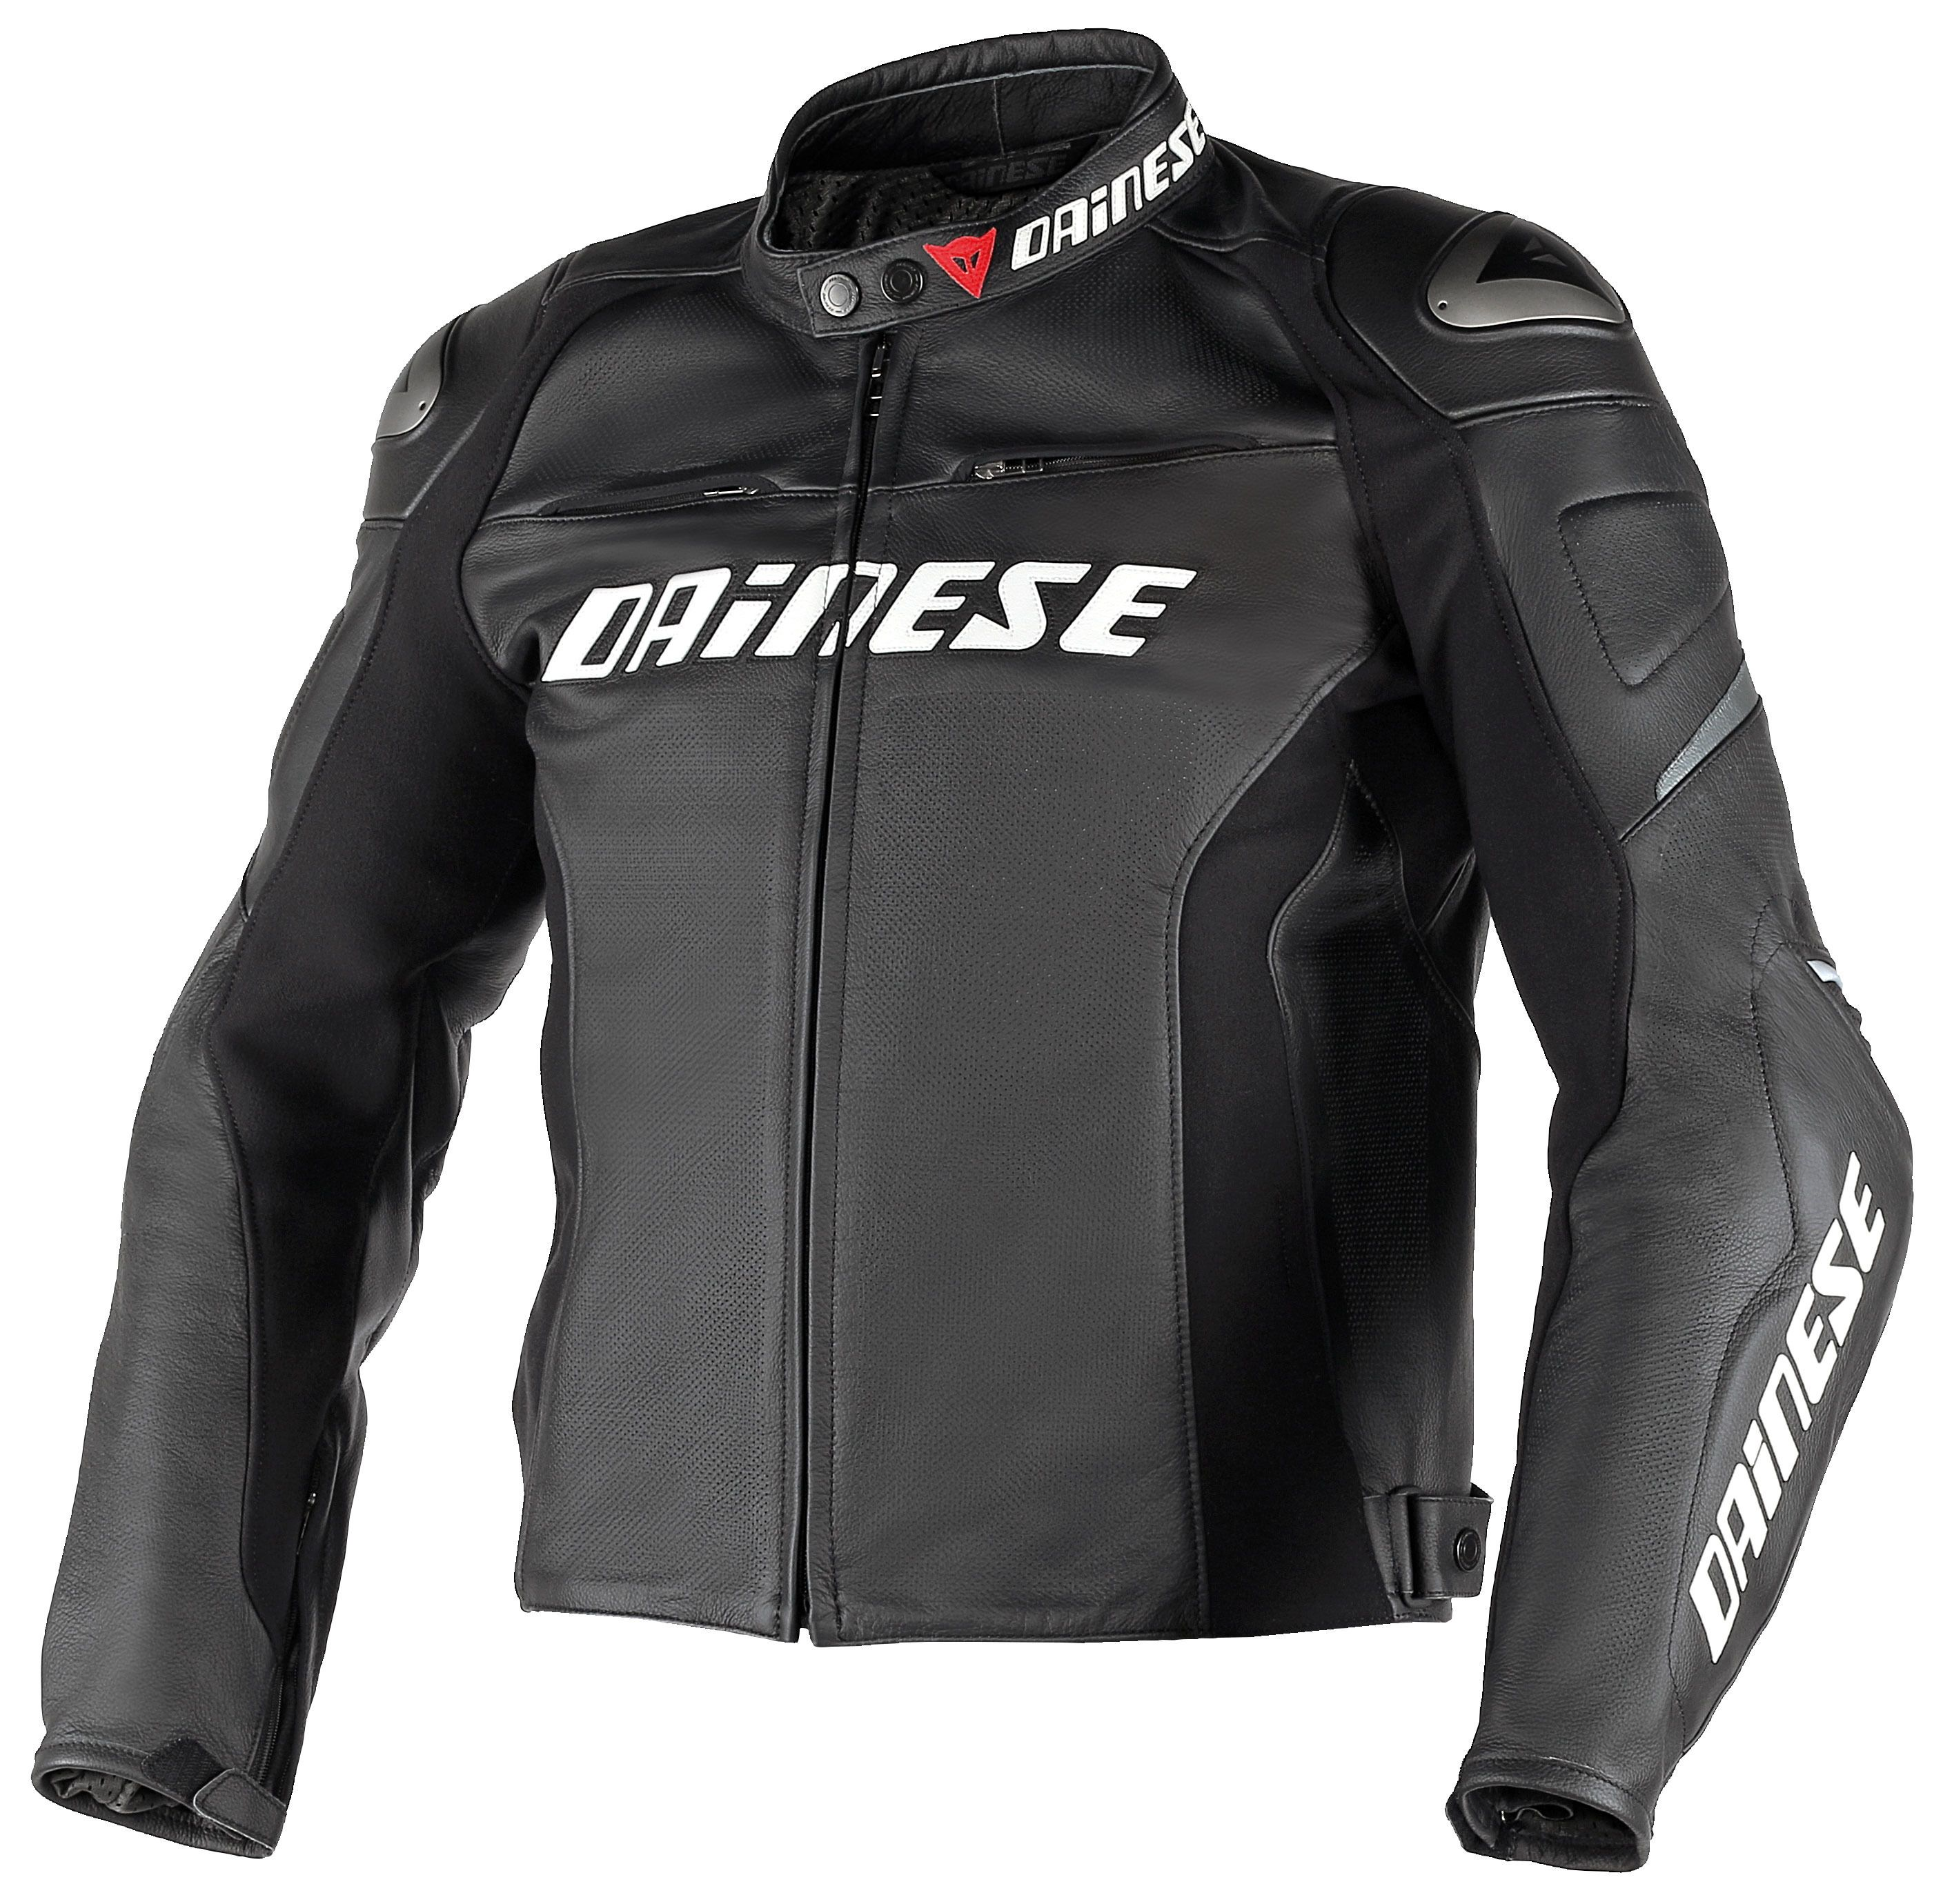 Dainese Racing D1 Perforated Leather Jacket Revzilla